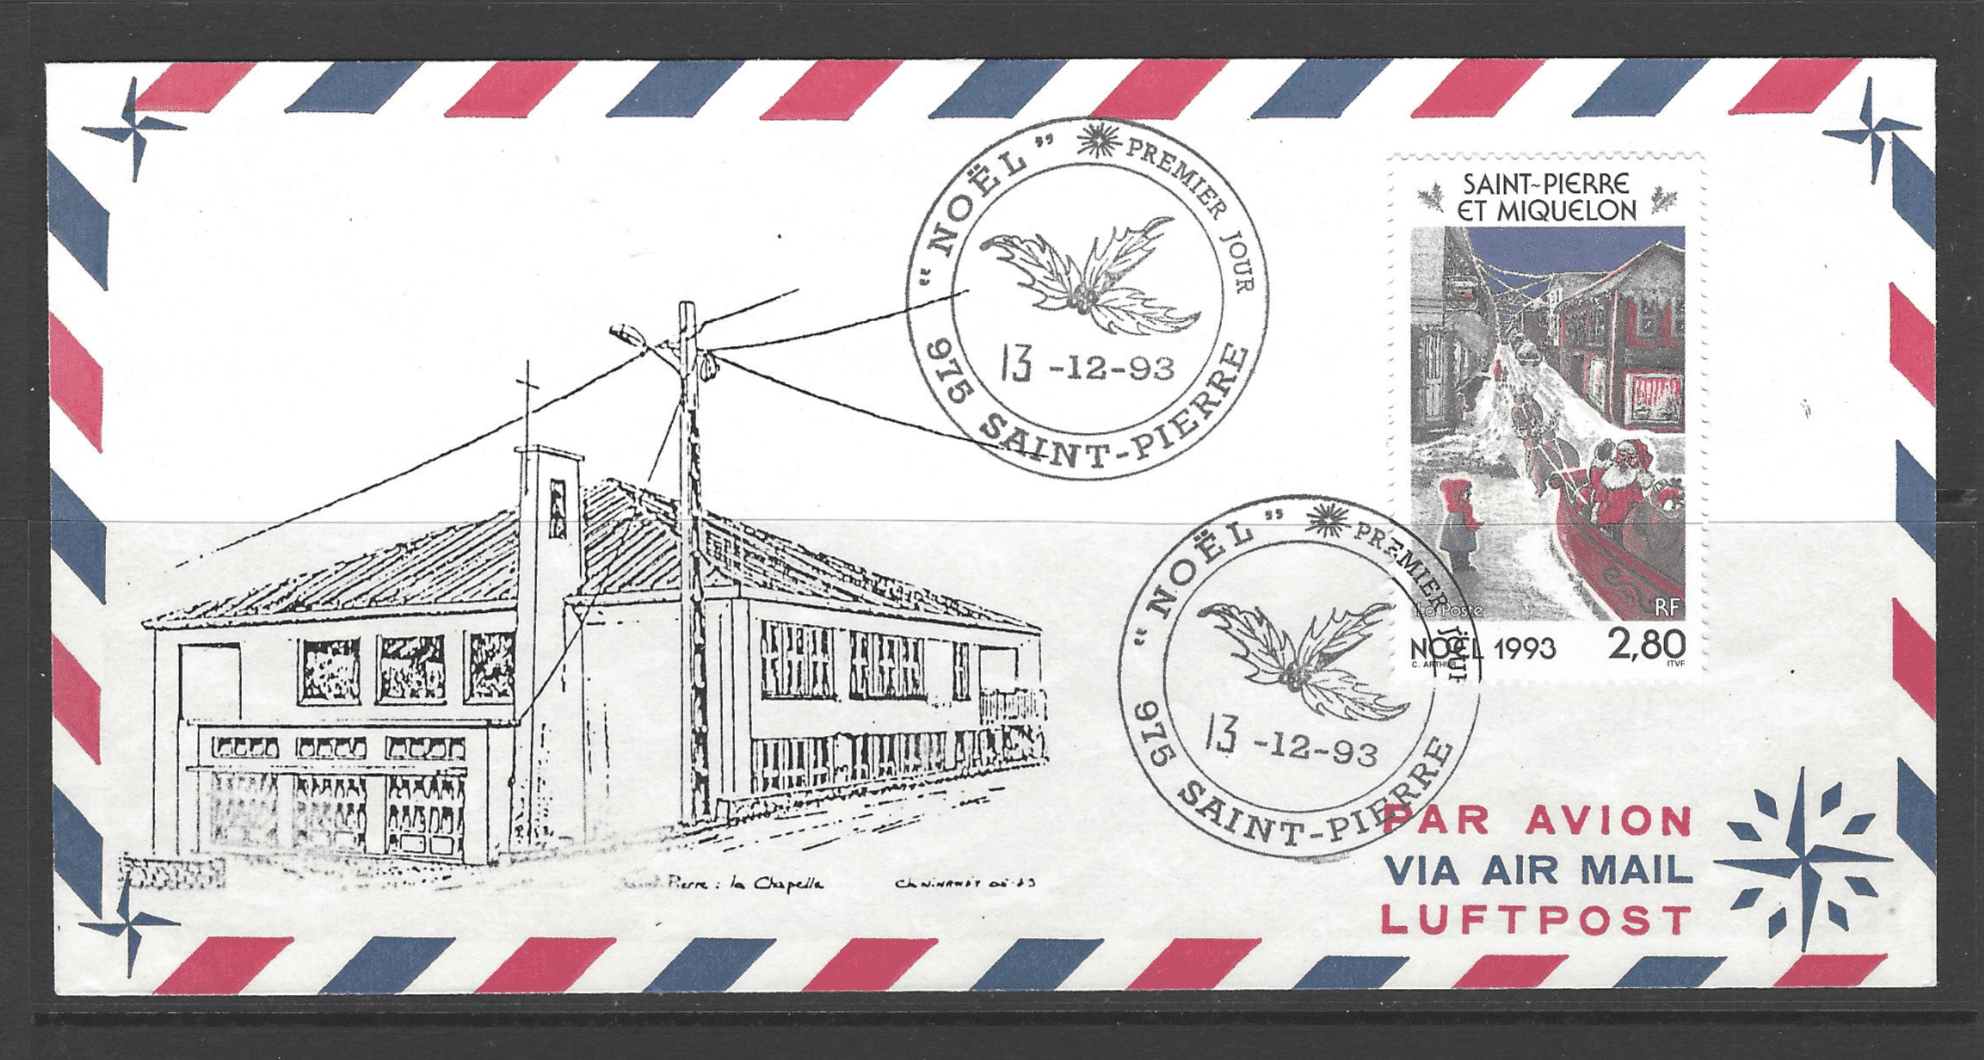 SG 708, on first day cover, St Pierre et Miquelon StampsSG 708, on first day cover, St Pierre et Miquelon Stamps